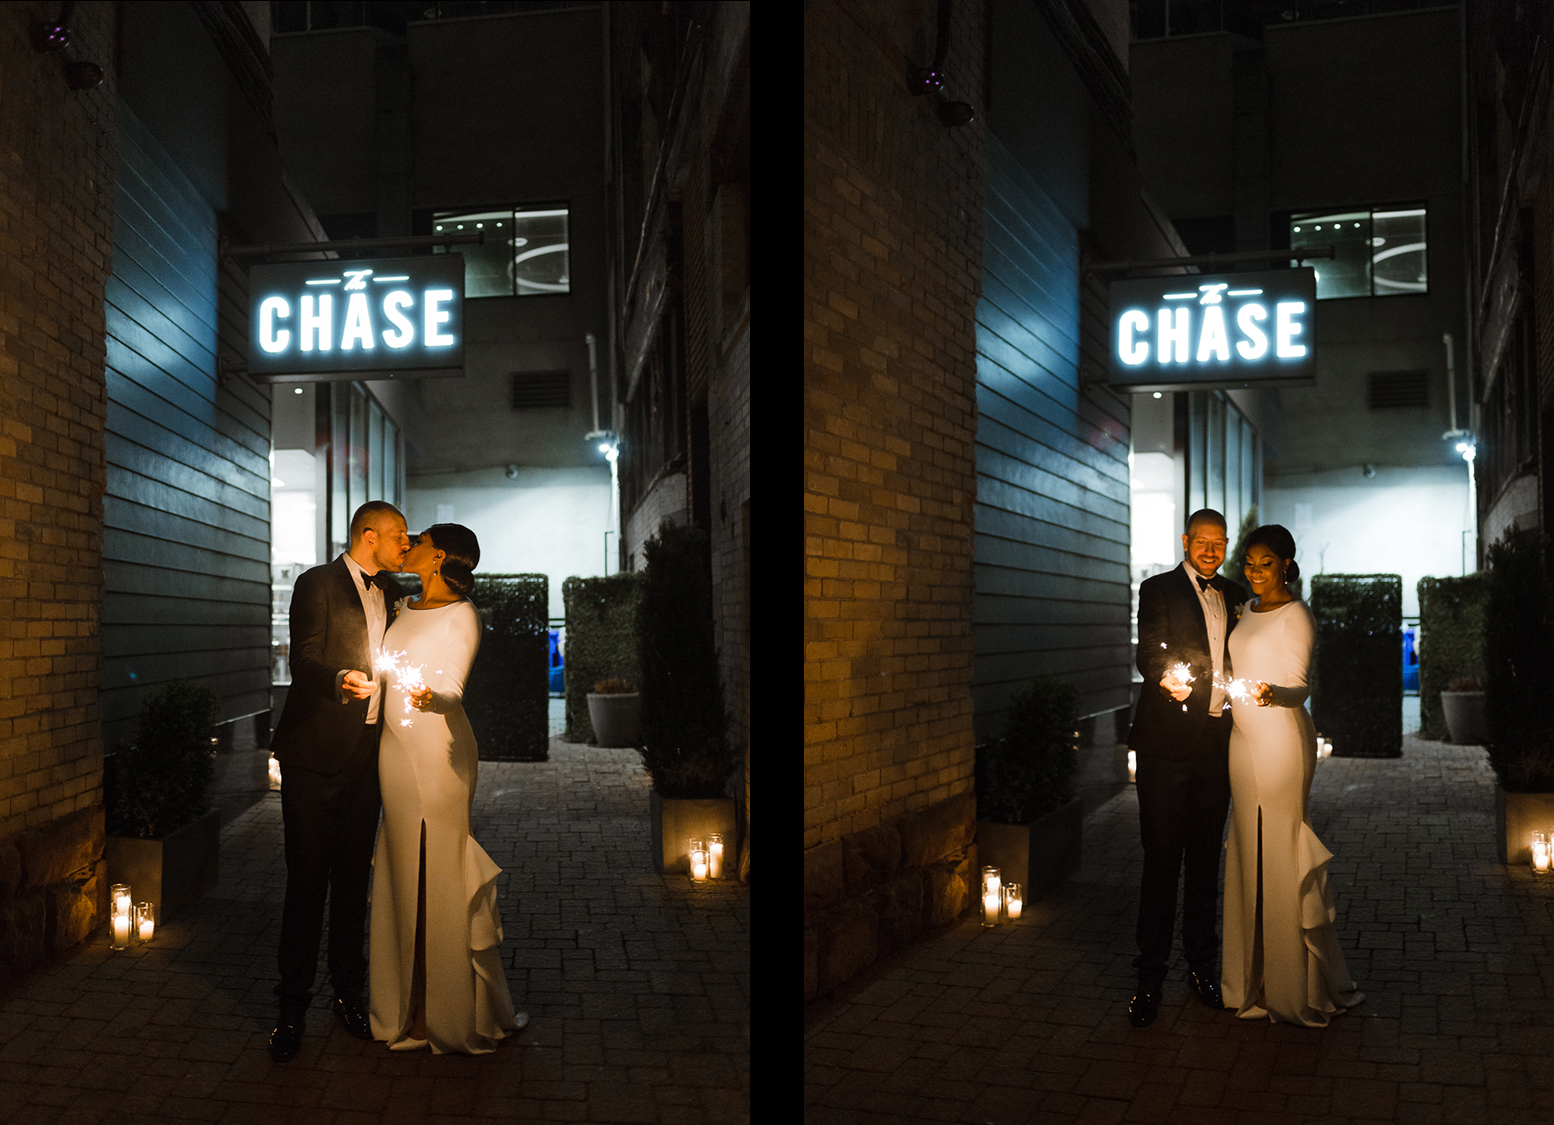 156-The-Chase-Wedding-Photography-Toronto-Best-Wedding-Photographer-3B-Photography-9.JPG